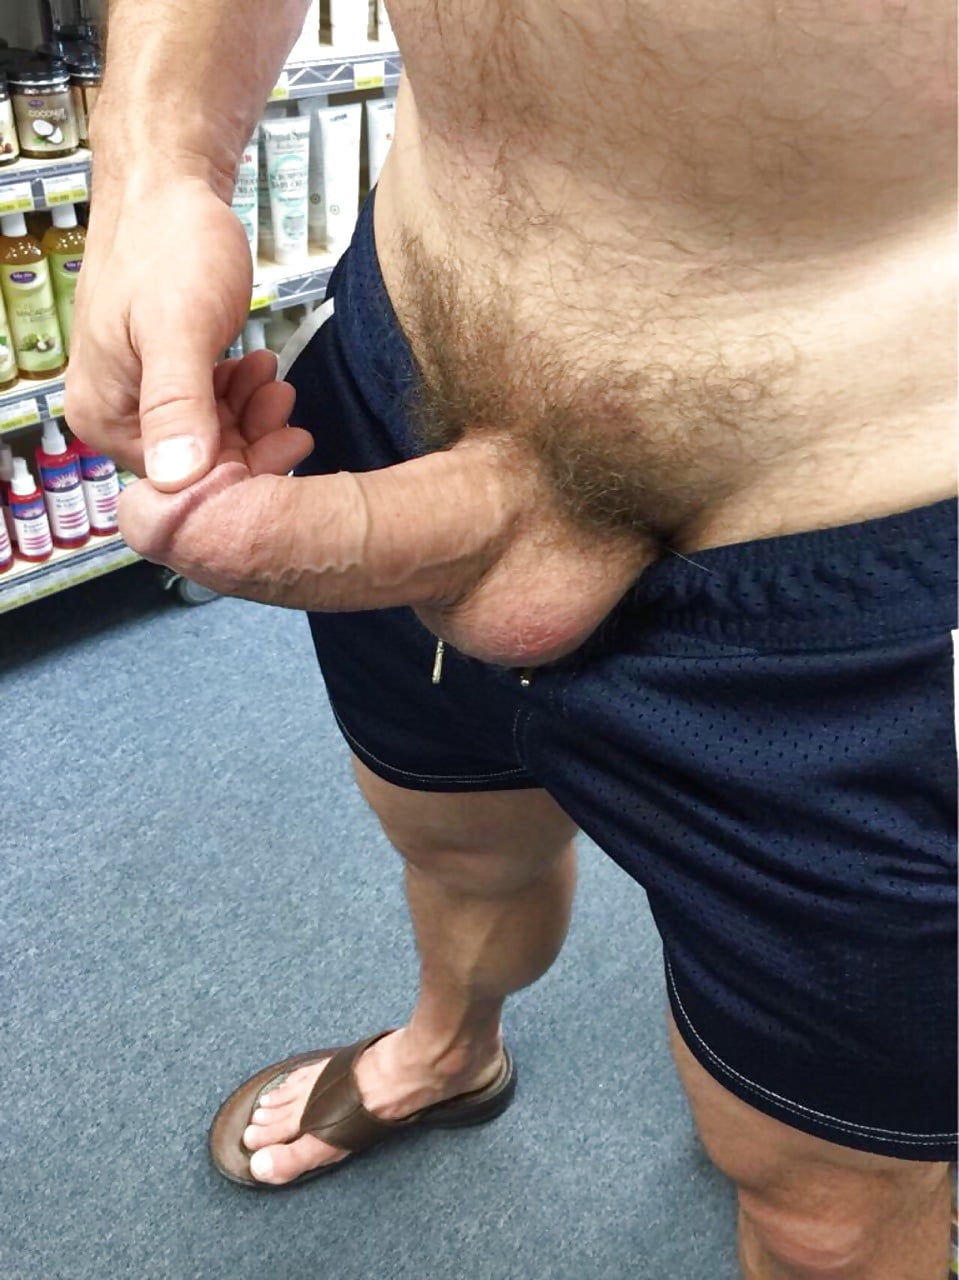 Penis Odor And Sports